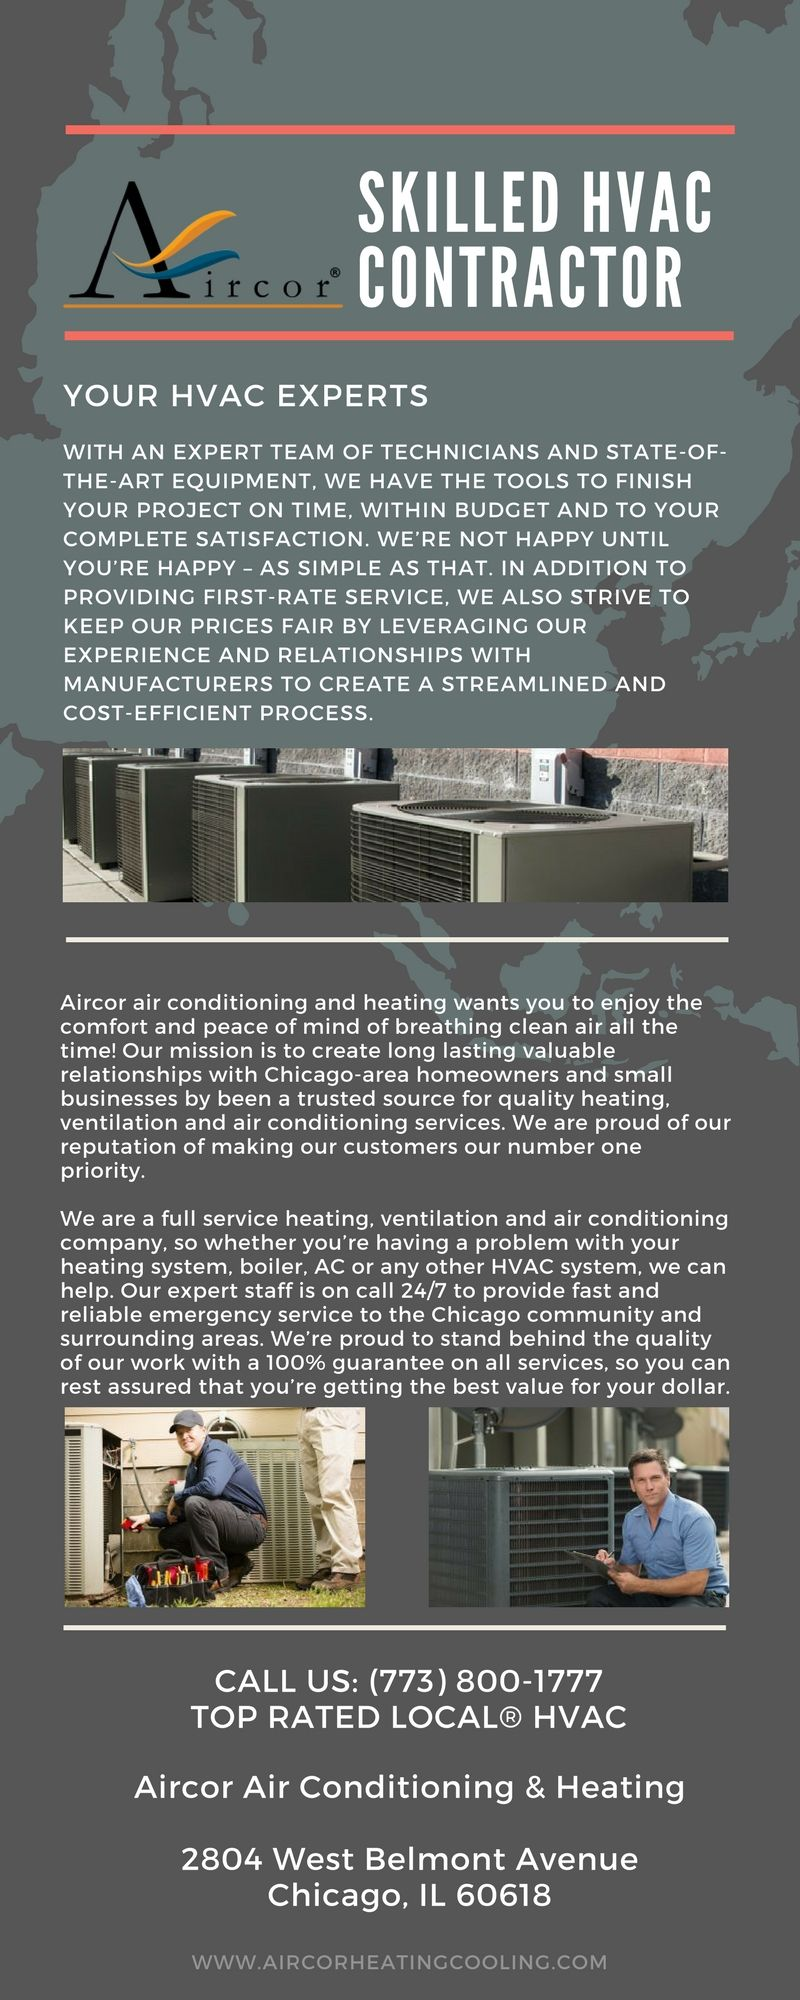 Pin by Carlo Mcclintock on Aircor The Skilled HVAC